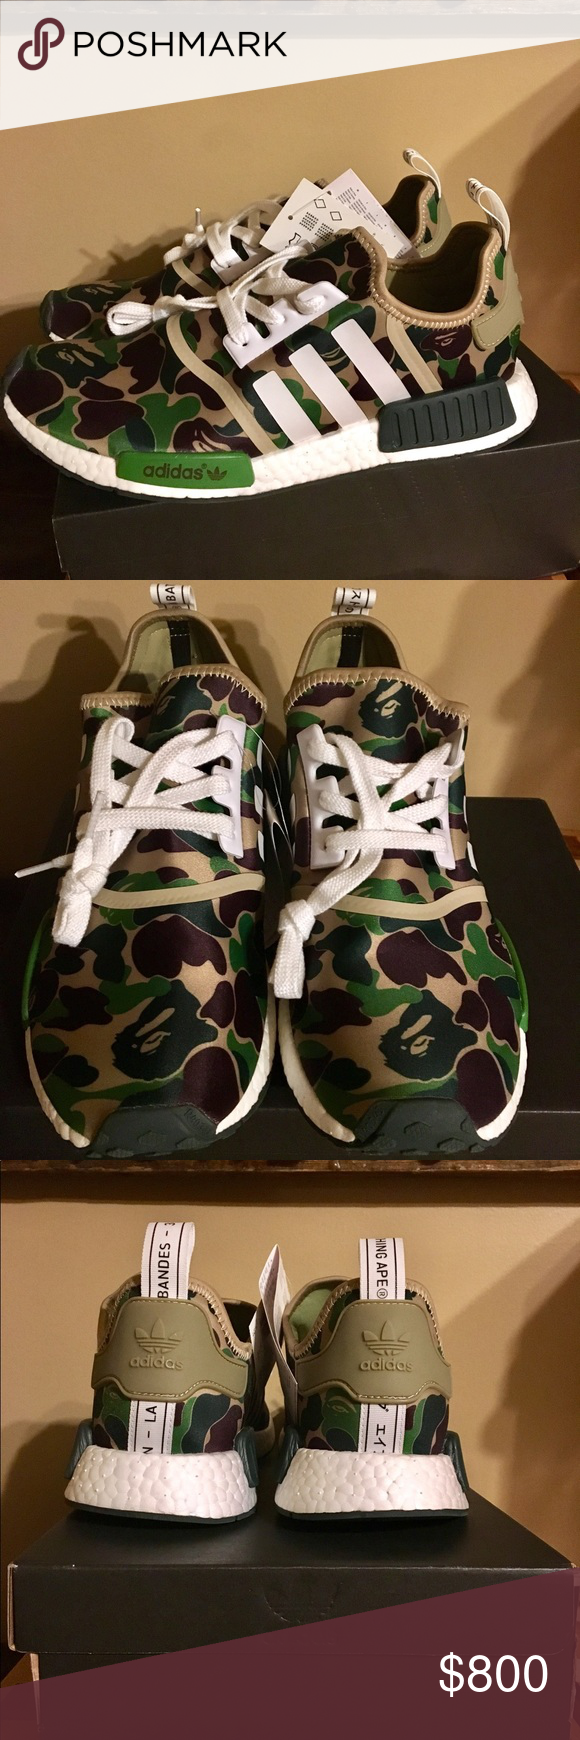 8b06f76a Bape NMD R1 size 12 Dead stock comes with receipt adidas Shoes Athletic  Shoes